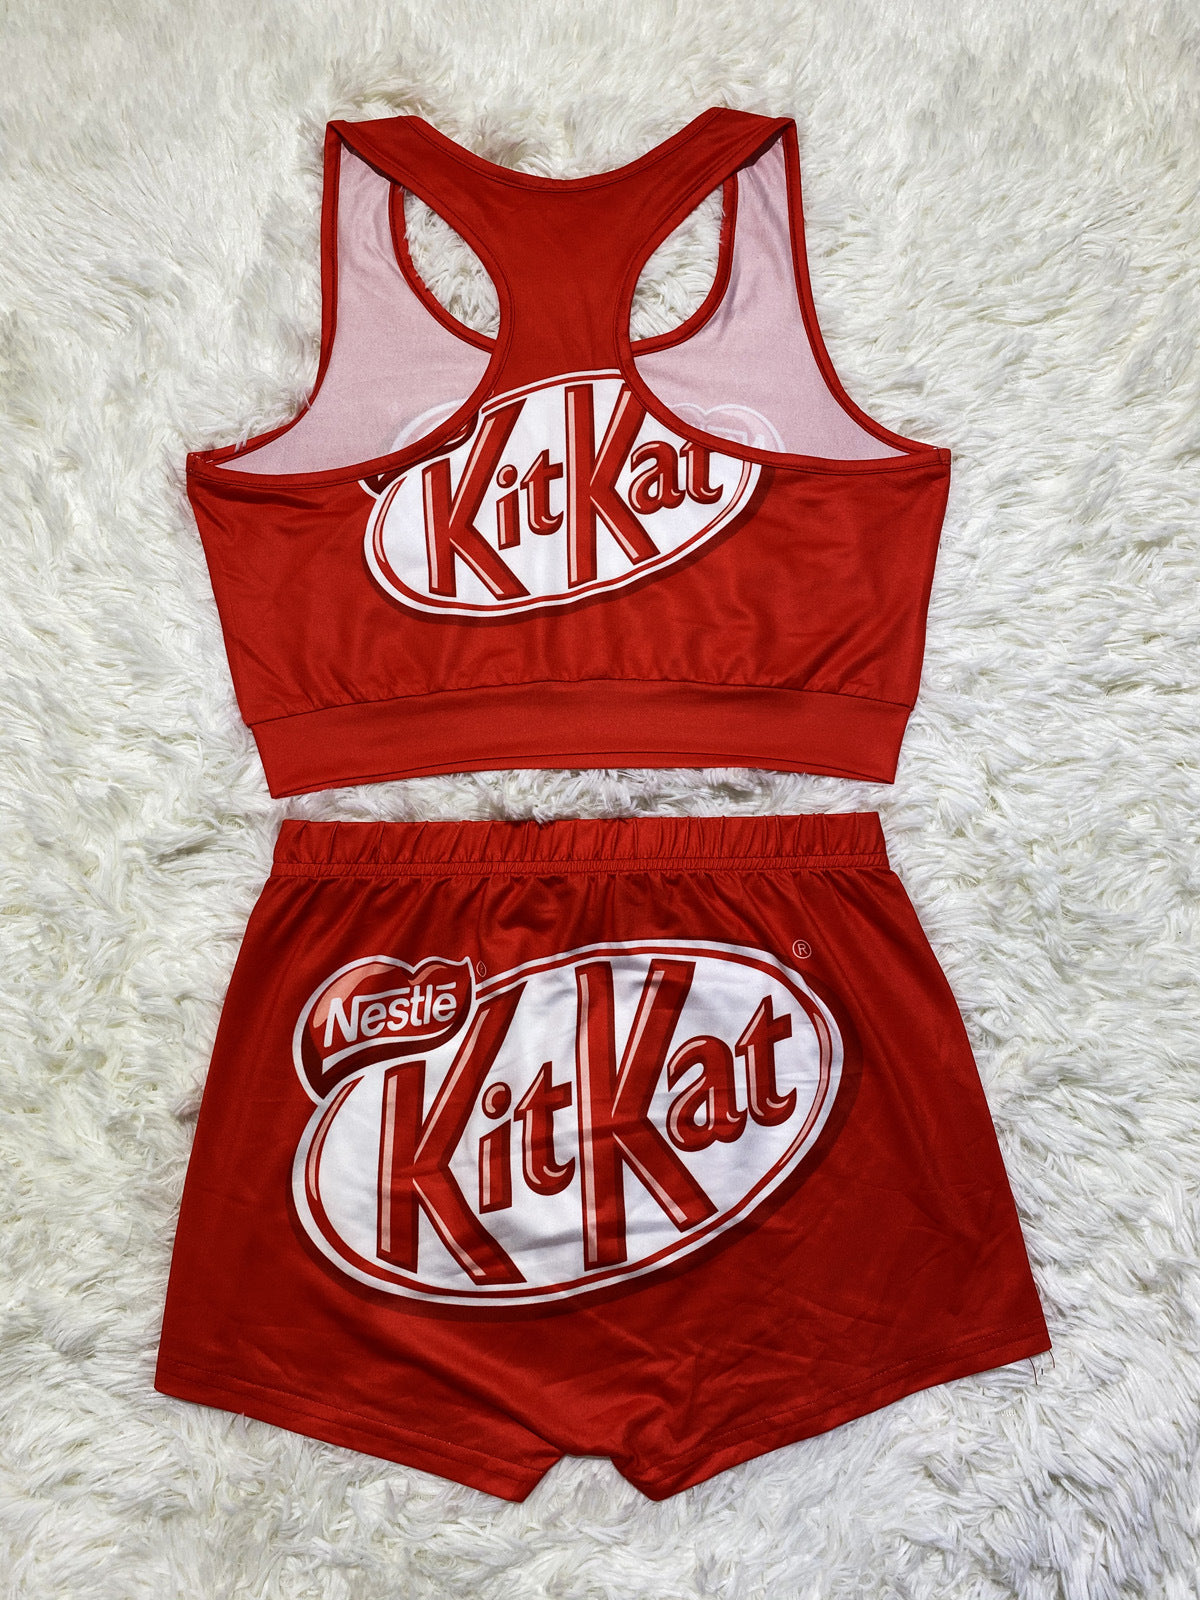 Kit Kat Printed Crop Top Short Set